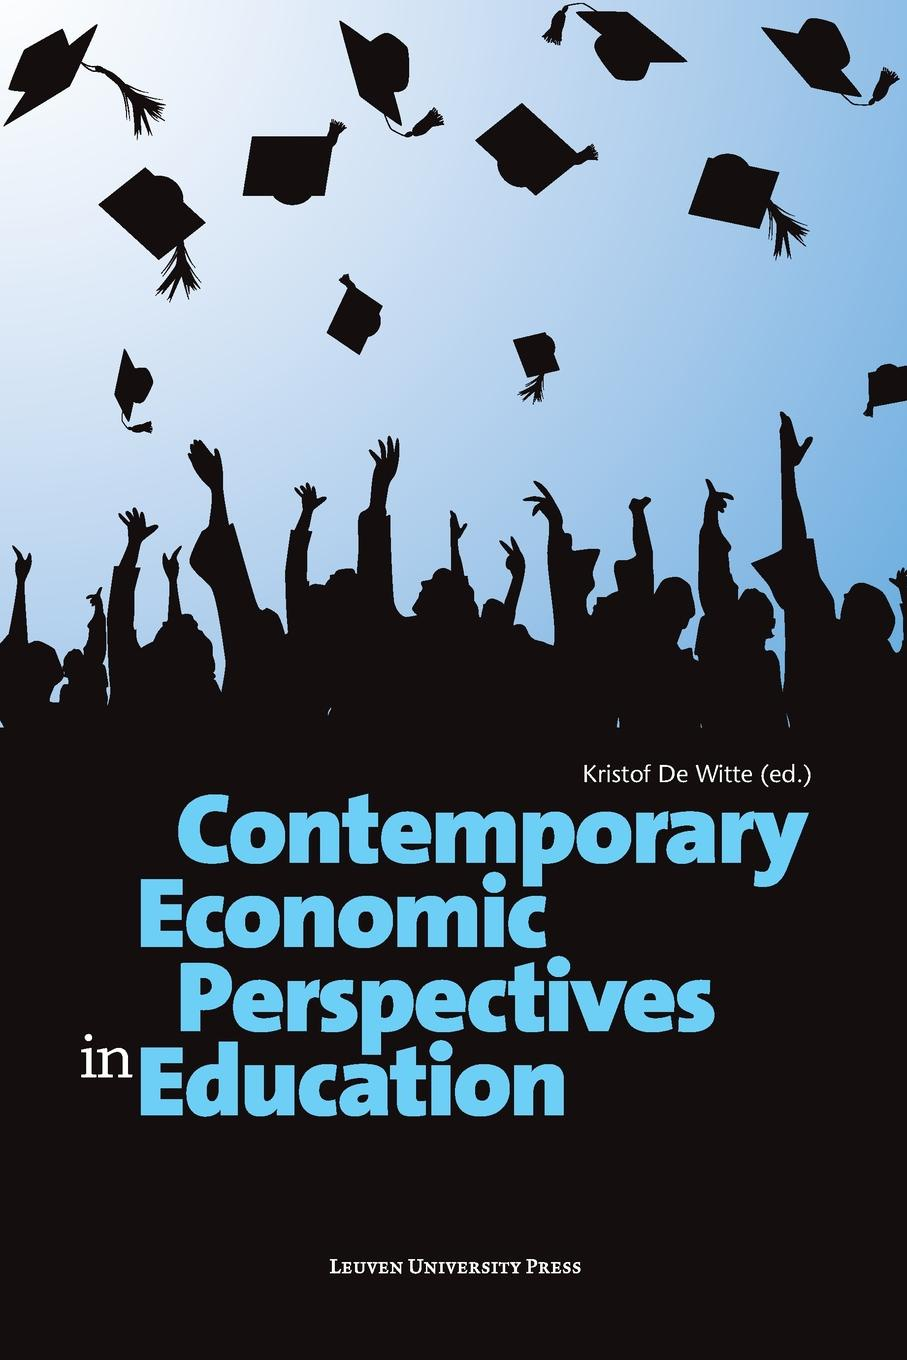 Contemporary Economic Perspectives in Education roland m schulz rethinking science education philosophical perspectives